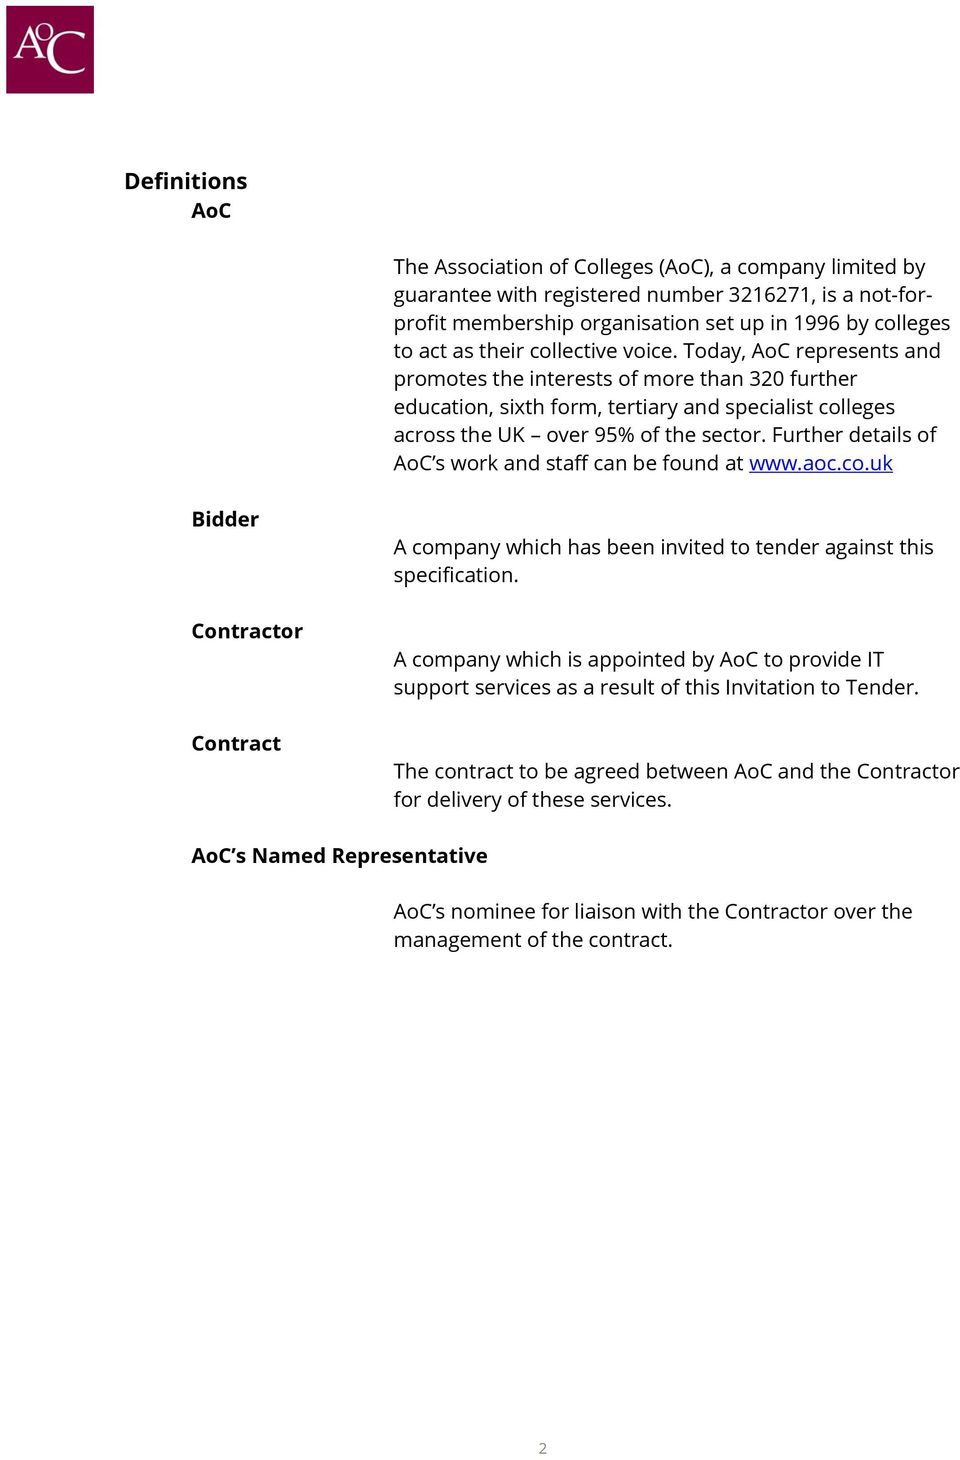 Further details of AoC s work and staff can be found at www.aoc.co.uk Bidder Contractor Contract A company which has been invited to tender against this specification.